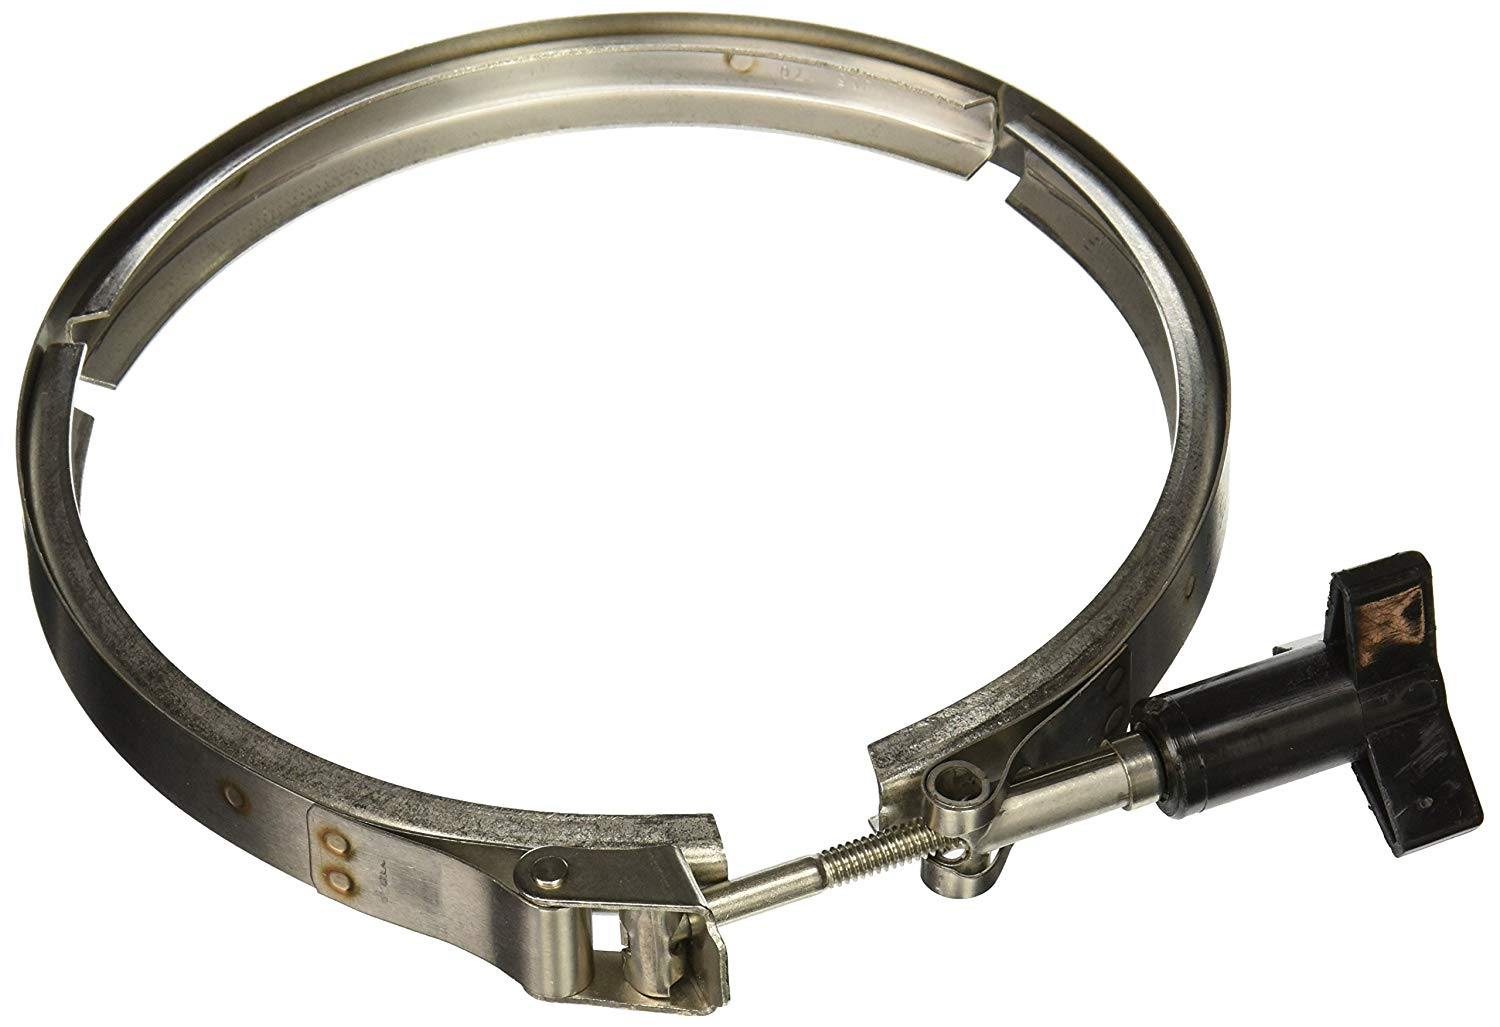 Pentair 070711 Clamp Band Assembly for Old-Style WhisperFlo, QuiteFlo, and AquaTron Pumps - Stainless Steel